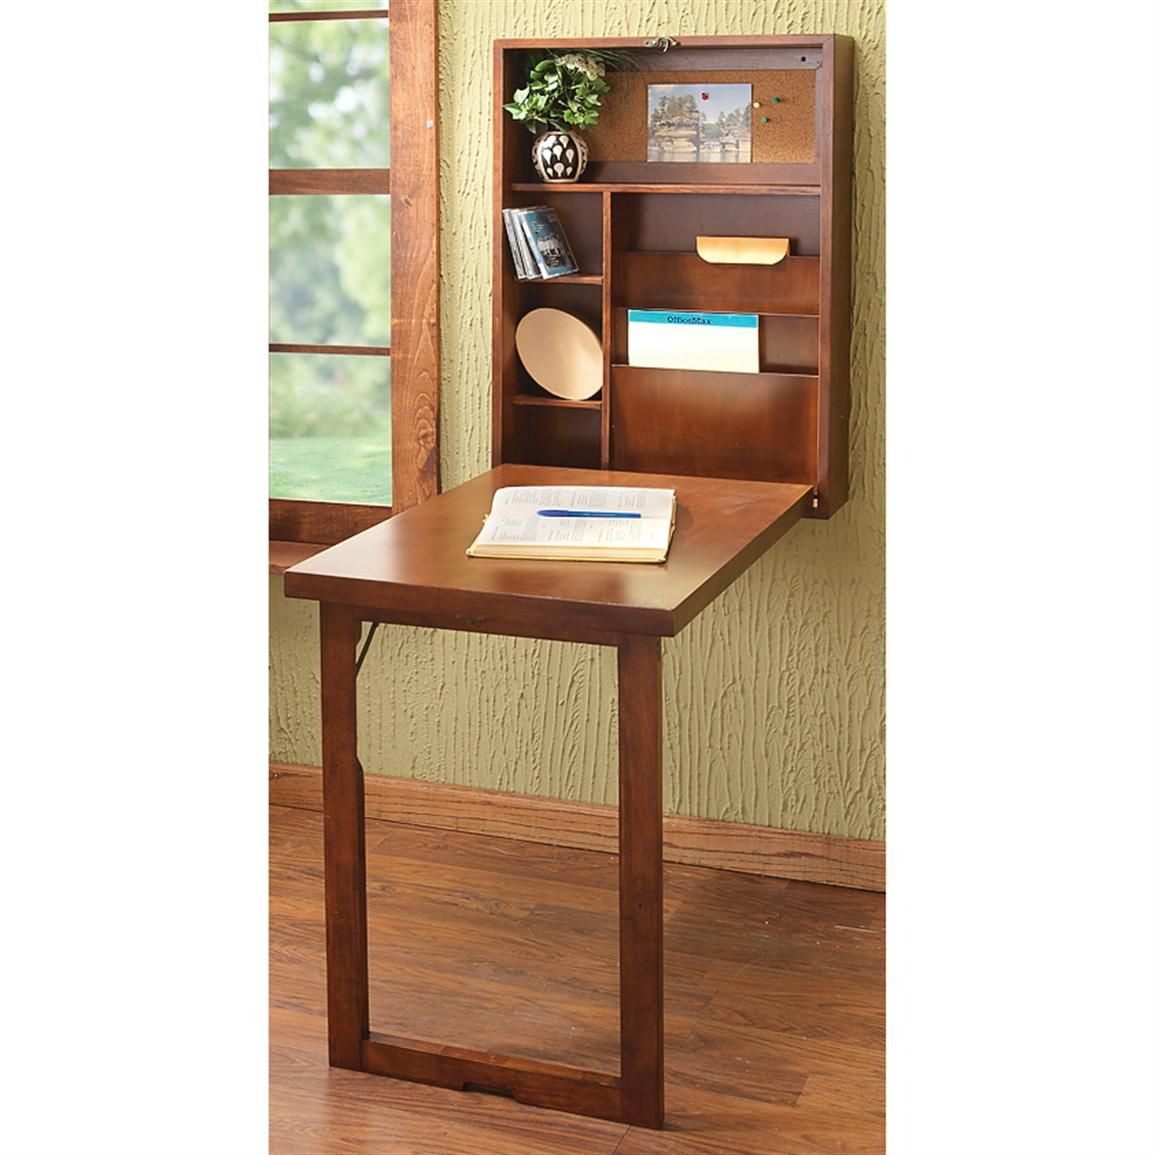 beds convertible desk storage horizontal combination beautiful to wall how and build in out of cost size large murphy fold bed modern furniture interior built queen with hidden